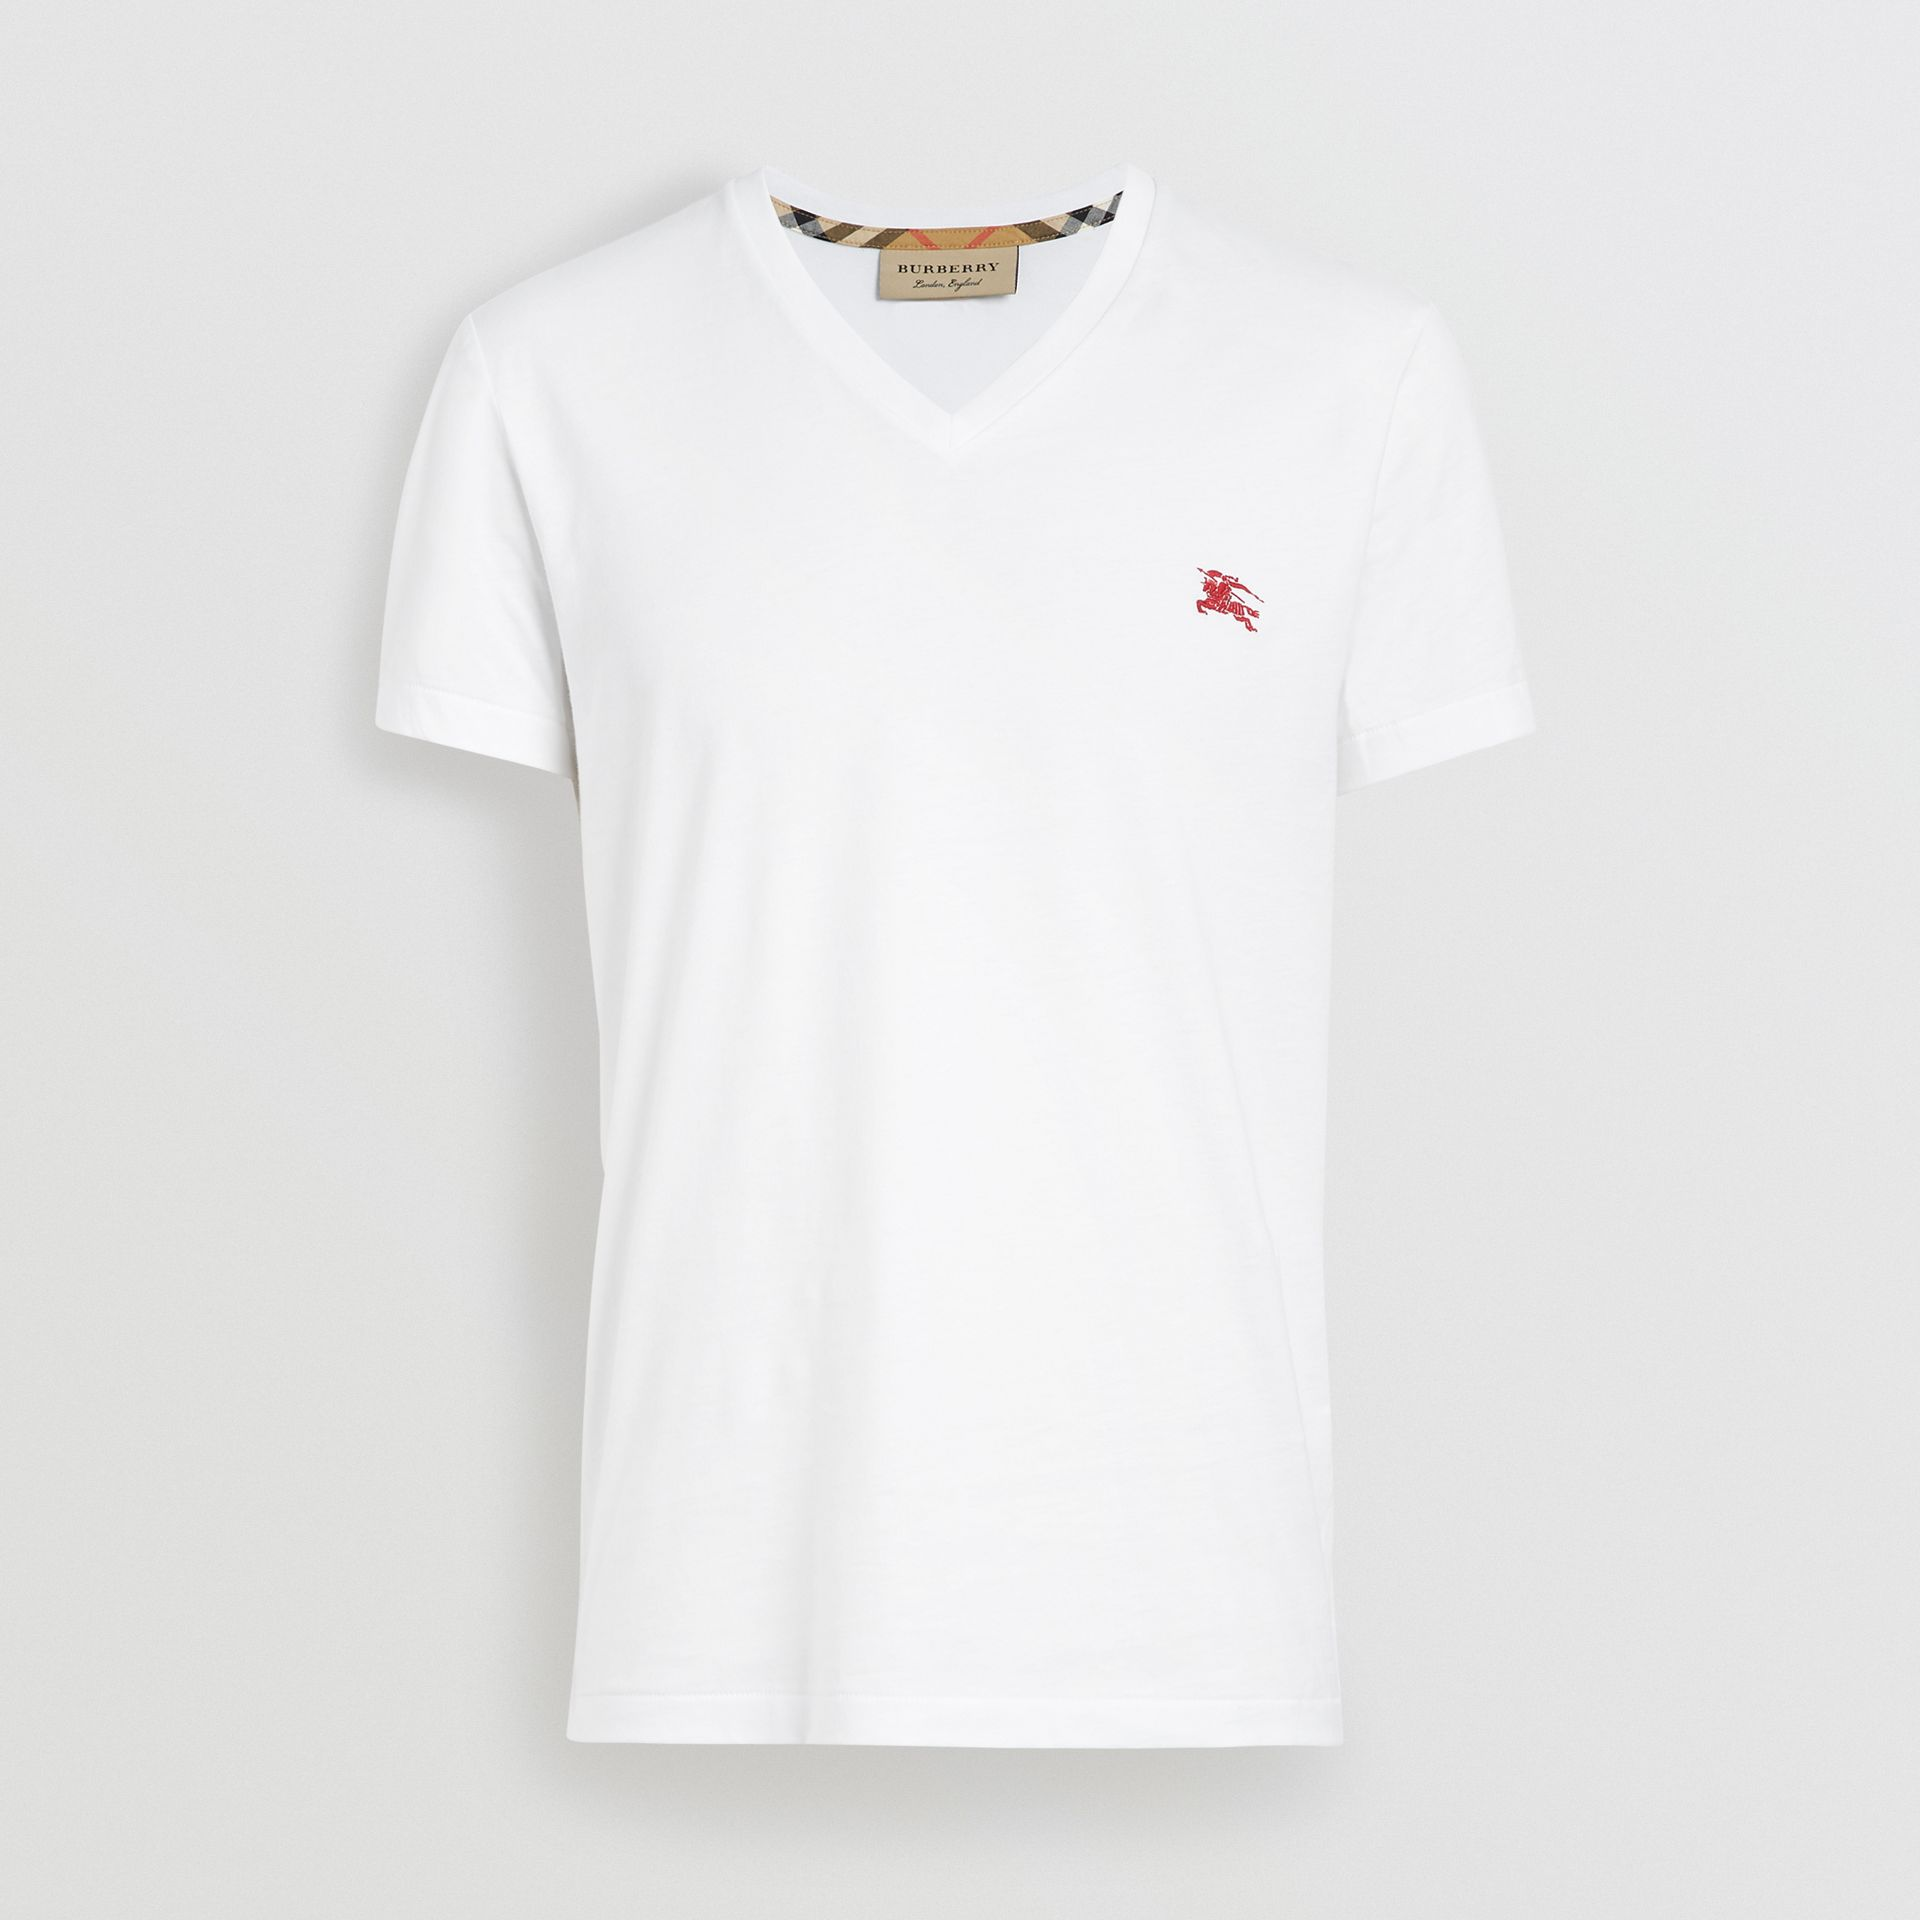 Cotton Jersey V-neck T-shirt in White - Men | Burberry United Kingdom - gallery image 3